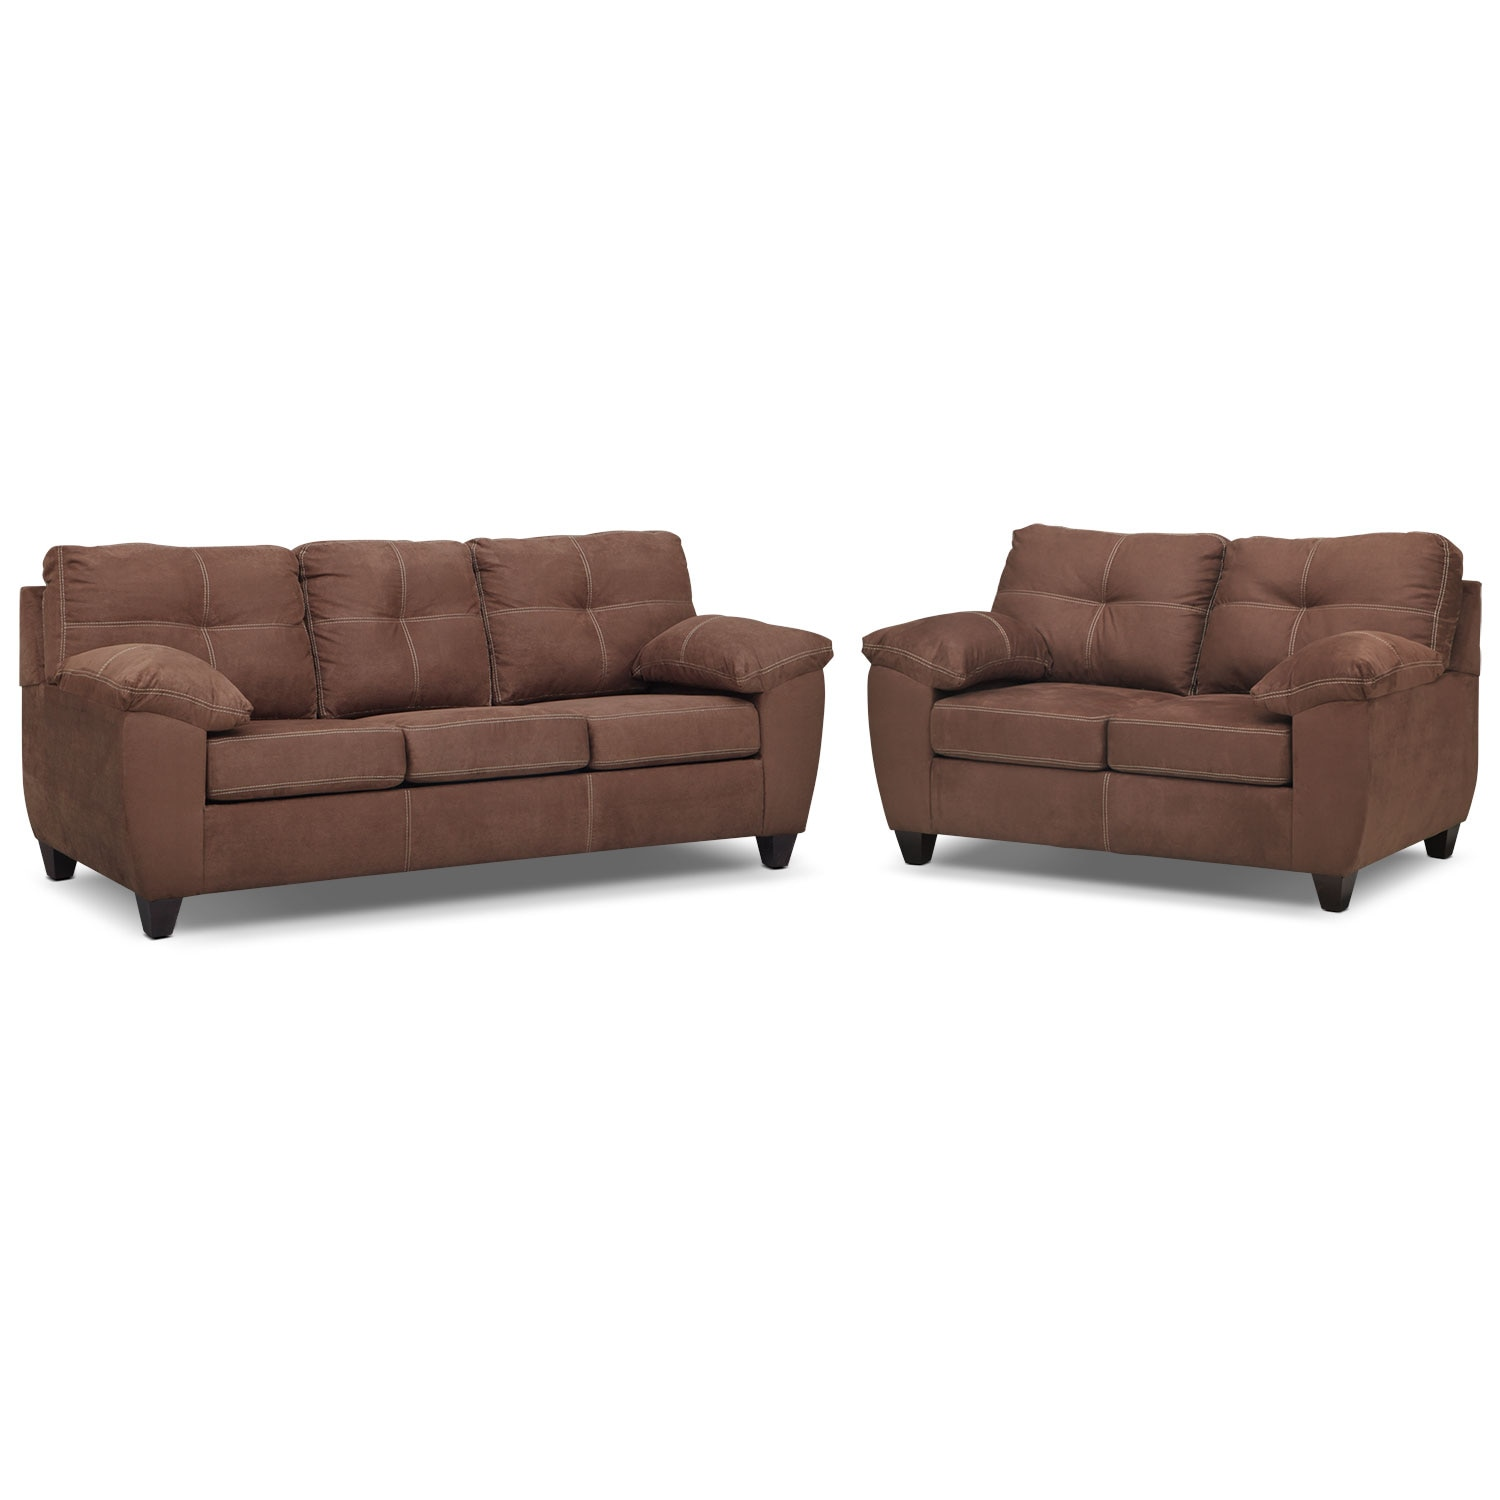 Living Room Furniture - Rialto Coffee 2 Pc. Living Room